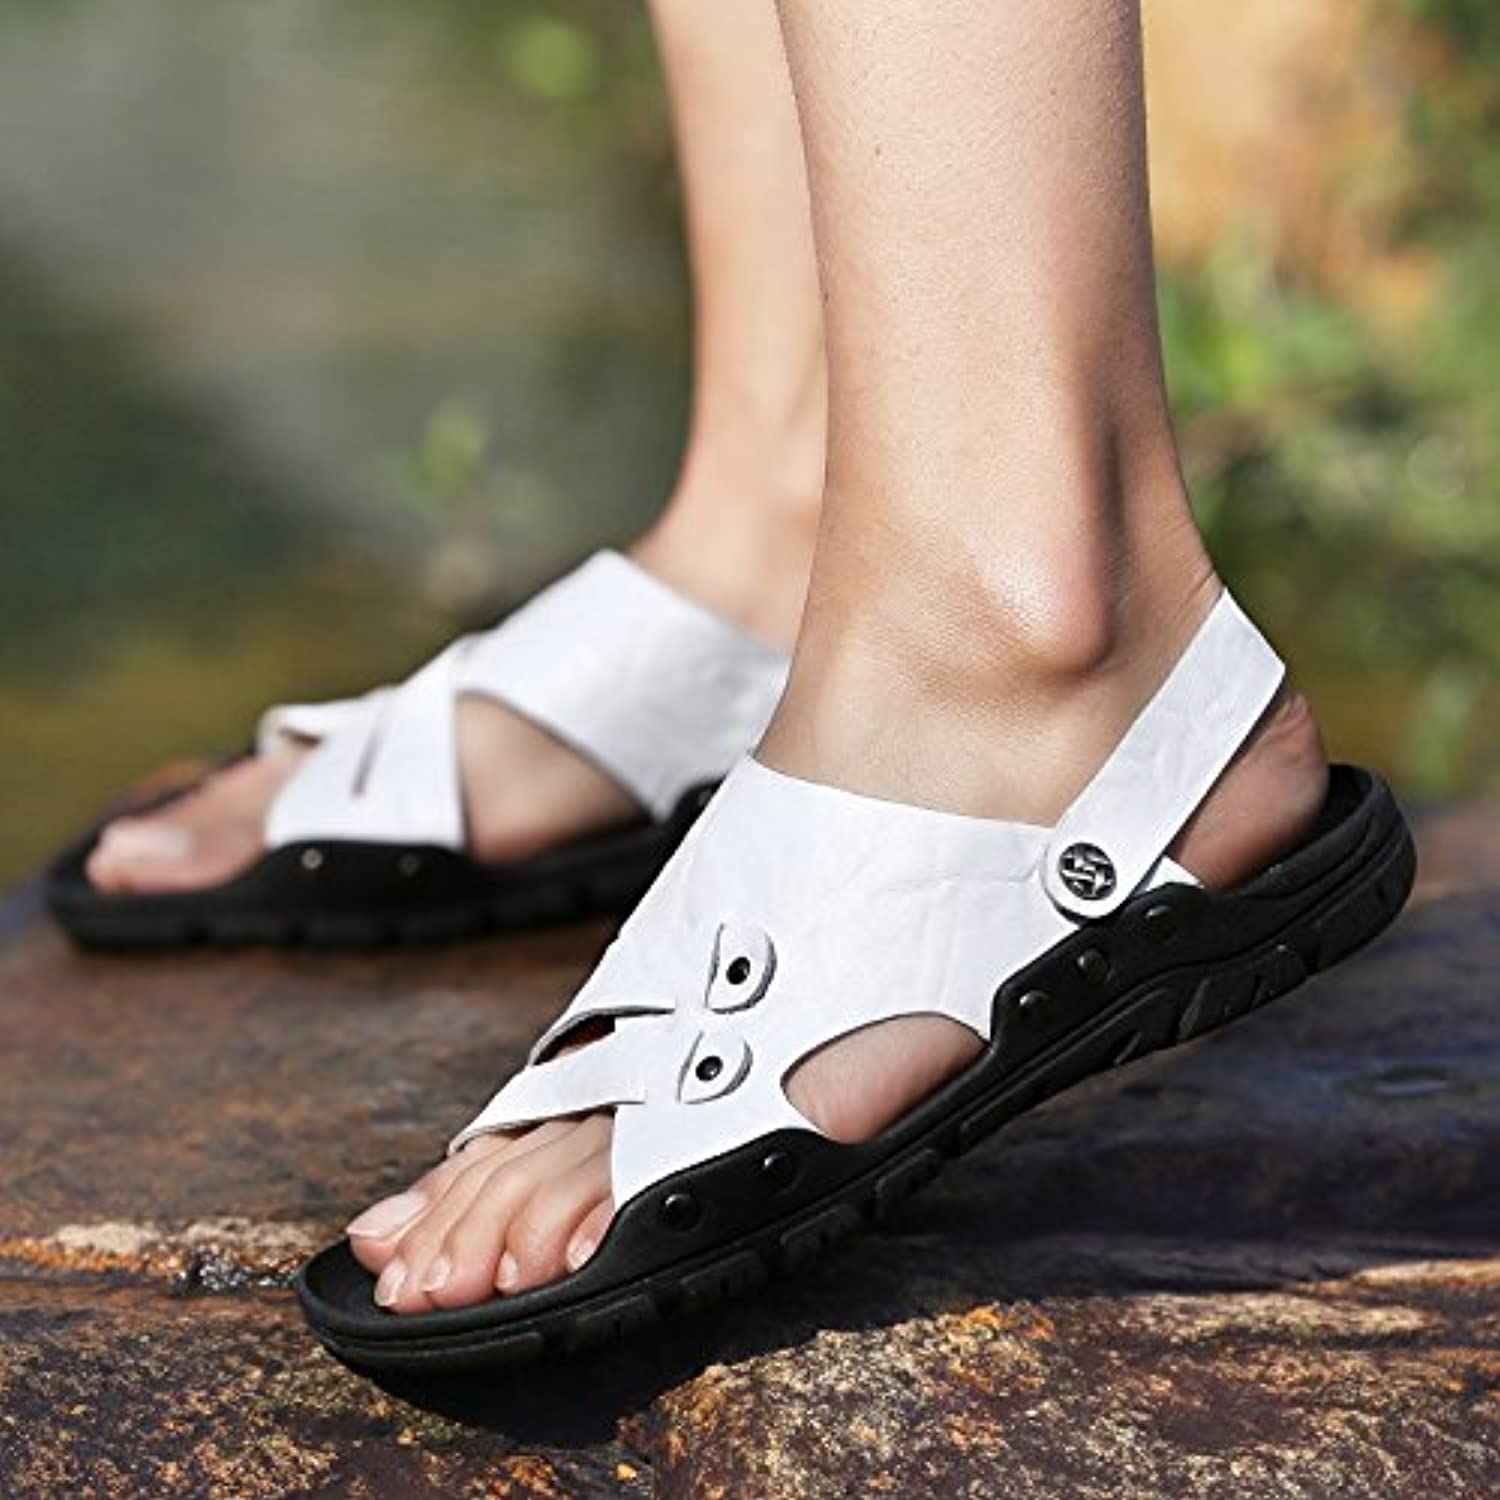 @Sandals New Men'S shoes, Summer Ventilation, Leisure Beach, Toes, Two Wear Cold shoes.